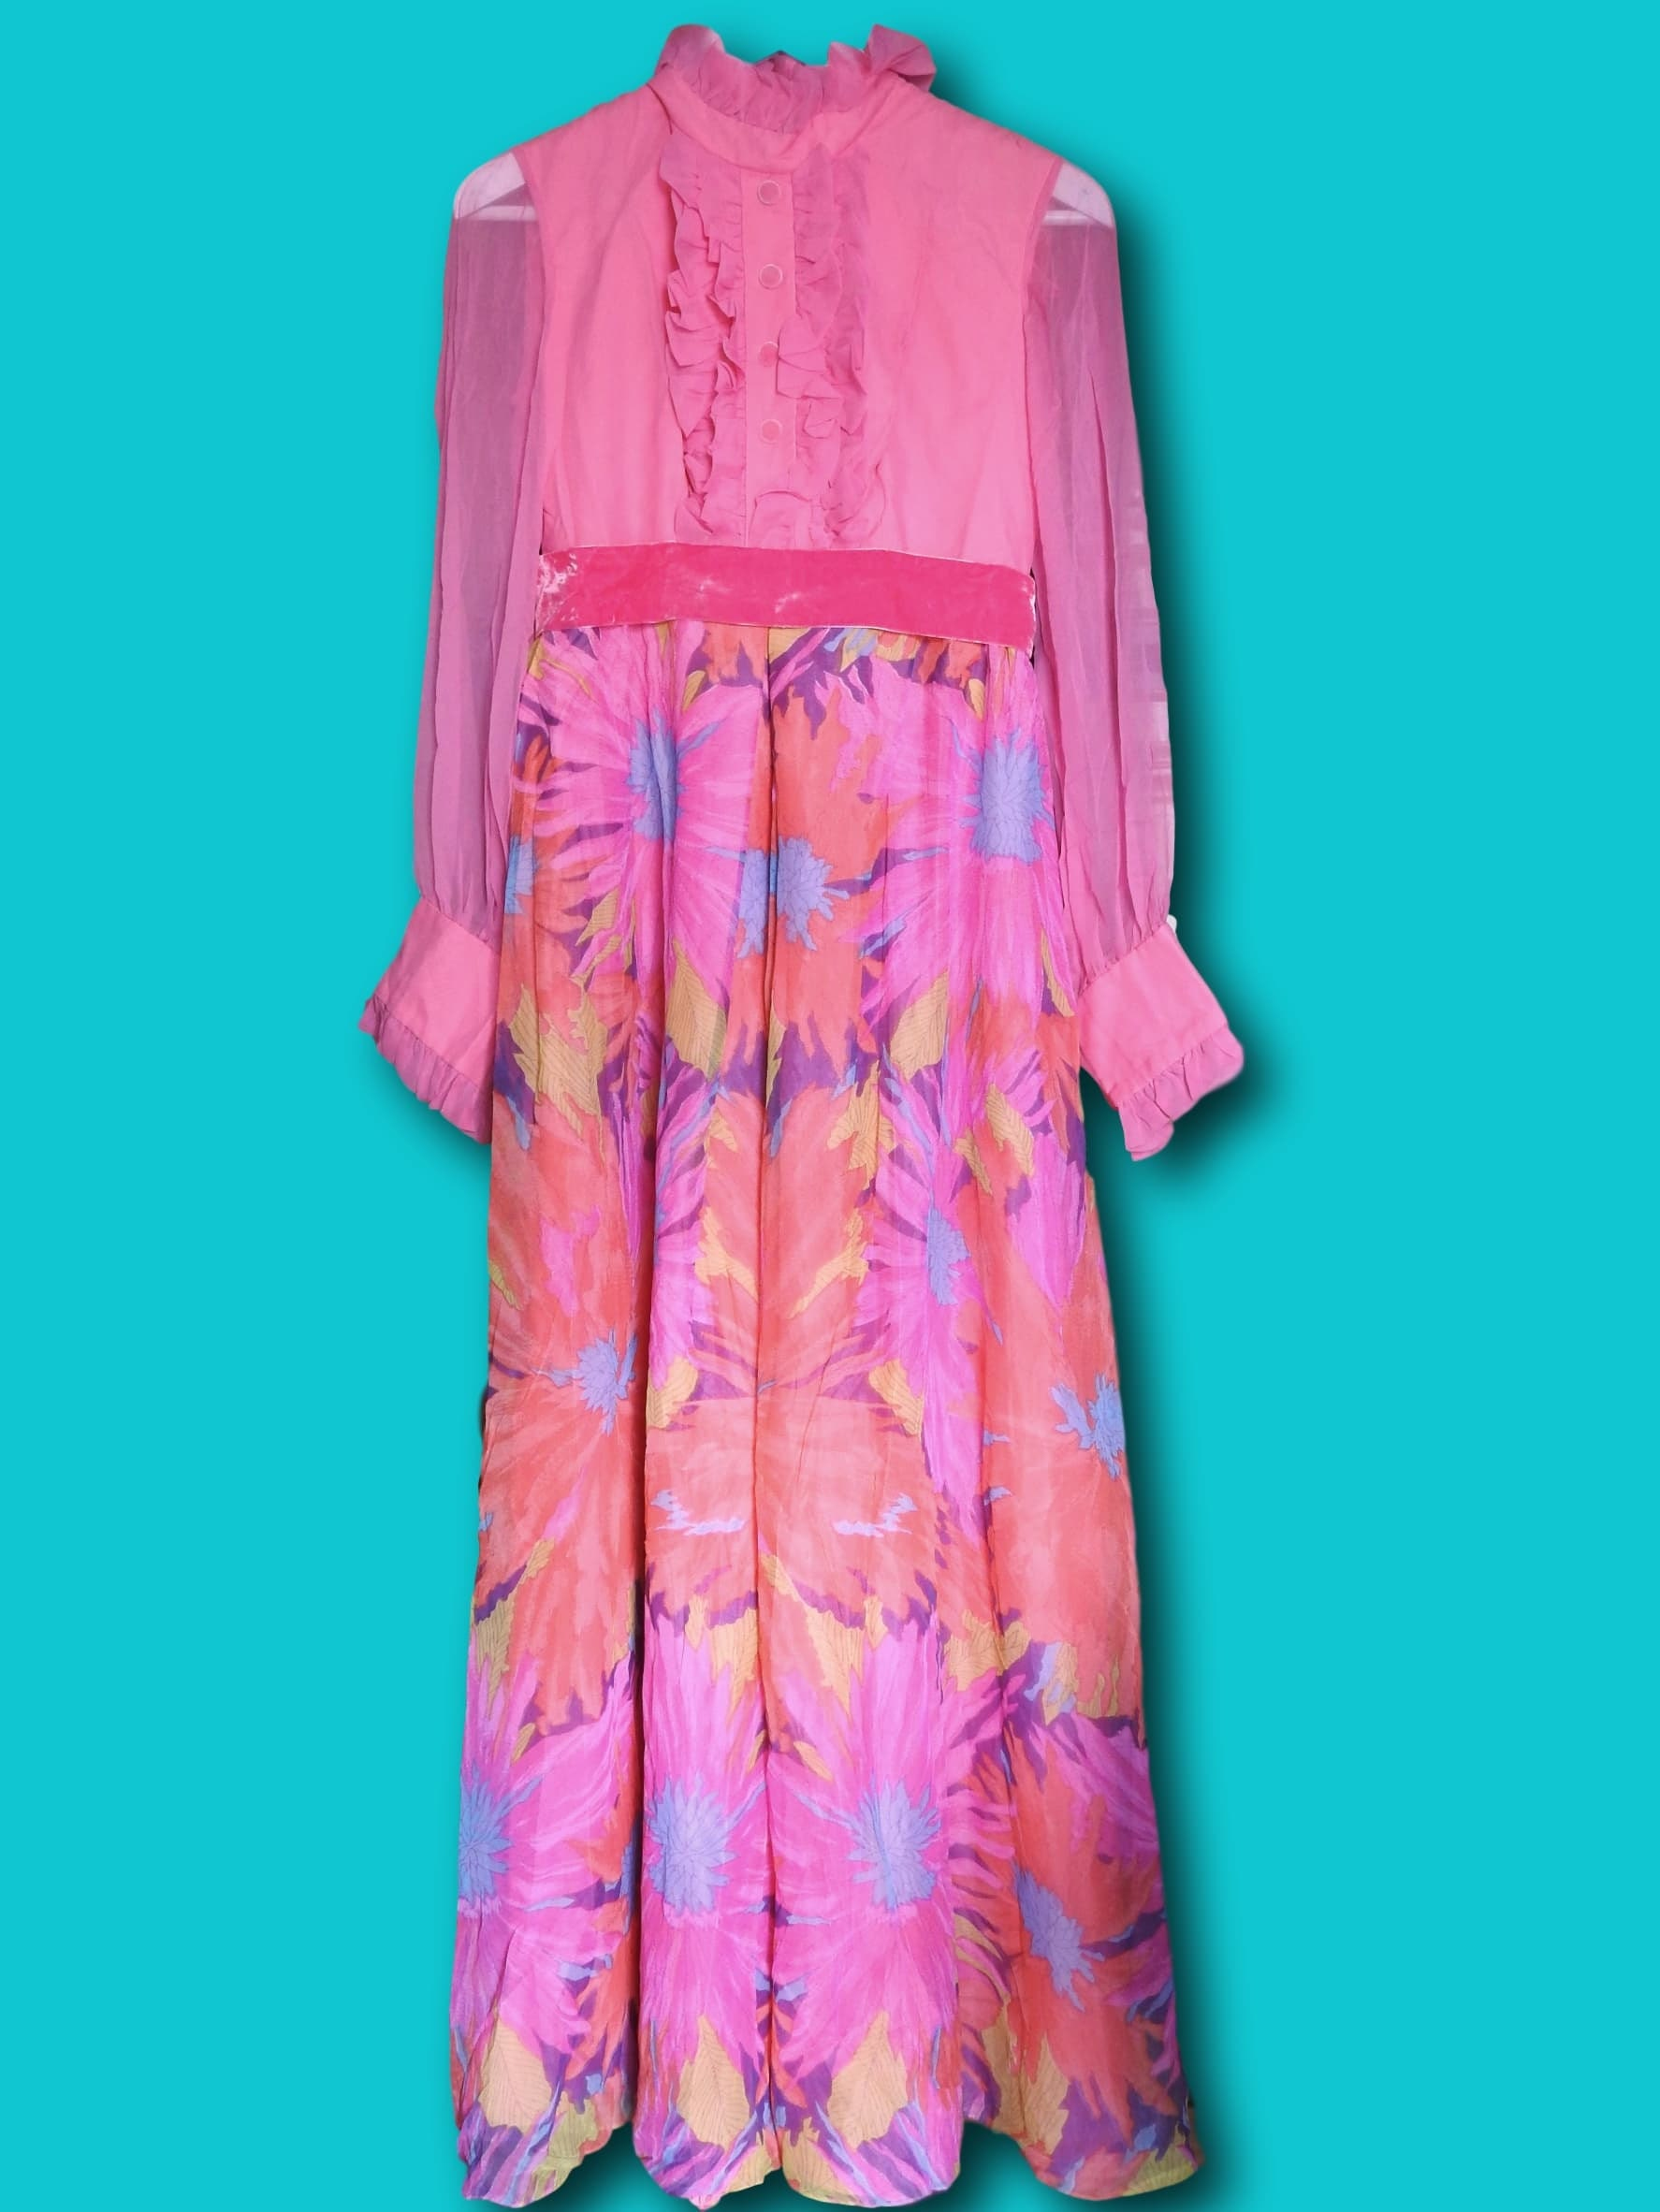 long sleeve 70s maxi dress, Long floral maxi dress with sleeves, chiffon long pink dress, tall women vintage clothing, floral long sleeve maxi dresses for women, pink dress, womens maxi dress, etsyvintage, Flowy hippie dress‎, 70s dress, boho maxi dress, magasin hippie chic, boho style shop, pink maxi dress, hippie dress, long flowy hippie dresses, hippie, boho dress, flower power,